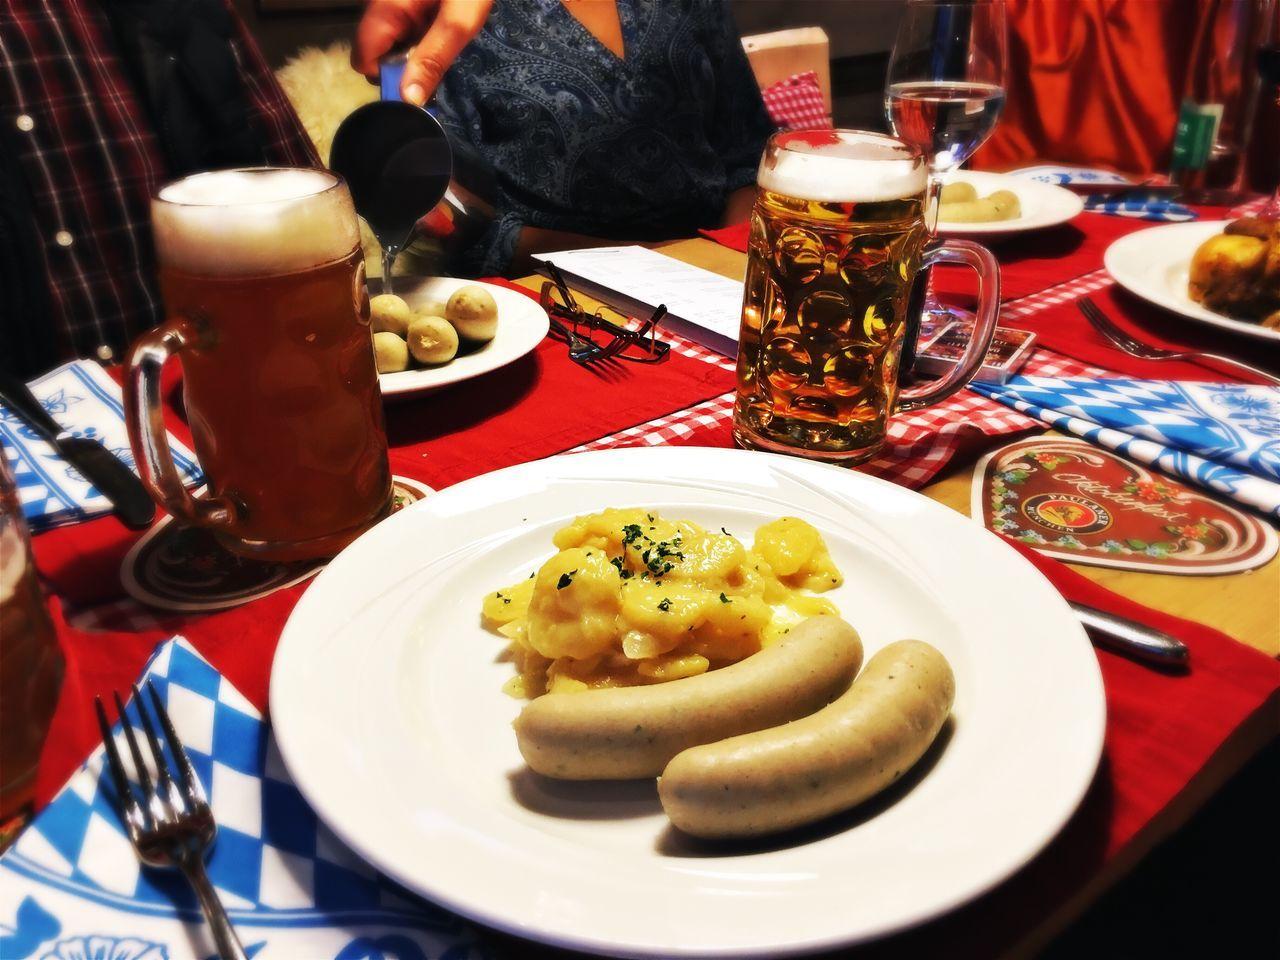 Food And Drink Plate Table Freshness Food Meal Indoors  Ready-to-eat Close-up Drink Refreshment Dinner Serving Size Indulgence Lunch Served Beverage Prepared Food Temptation Serving Dish Beer Wurst Weisswurst Bayern Germany